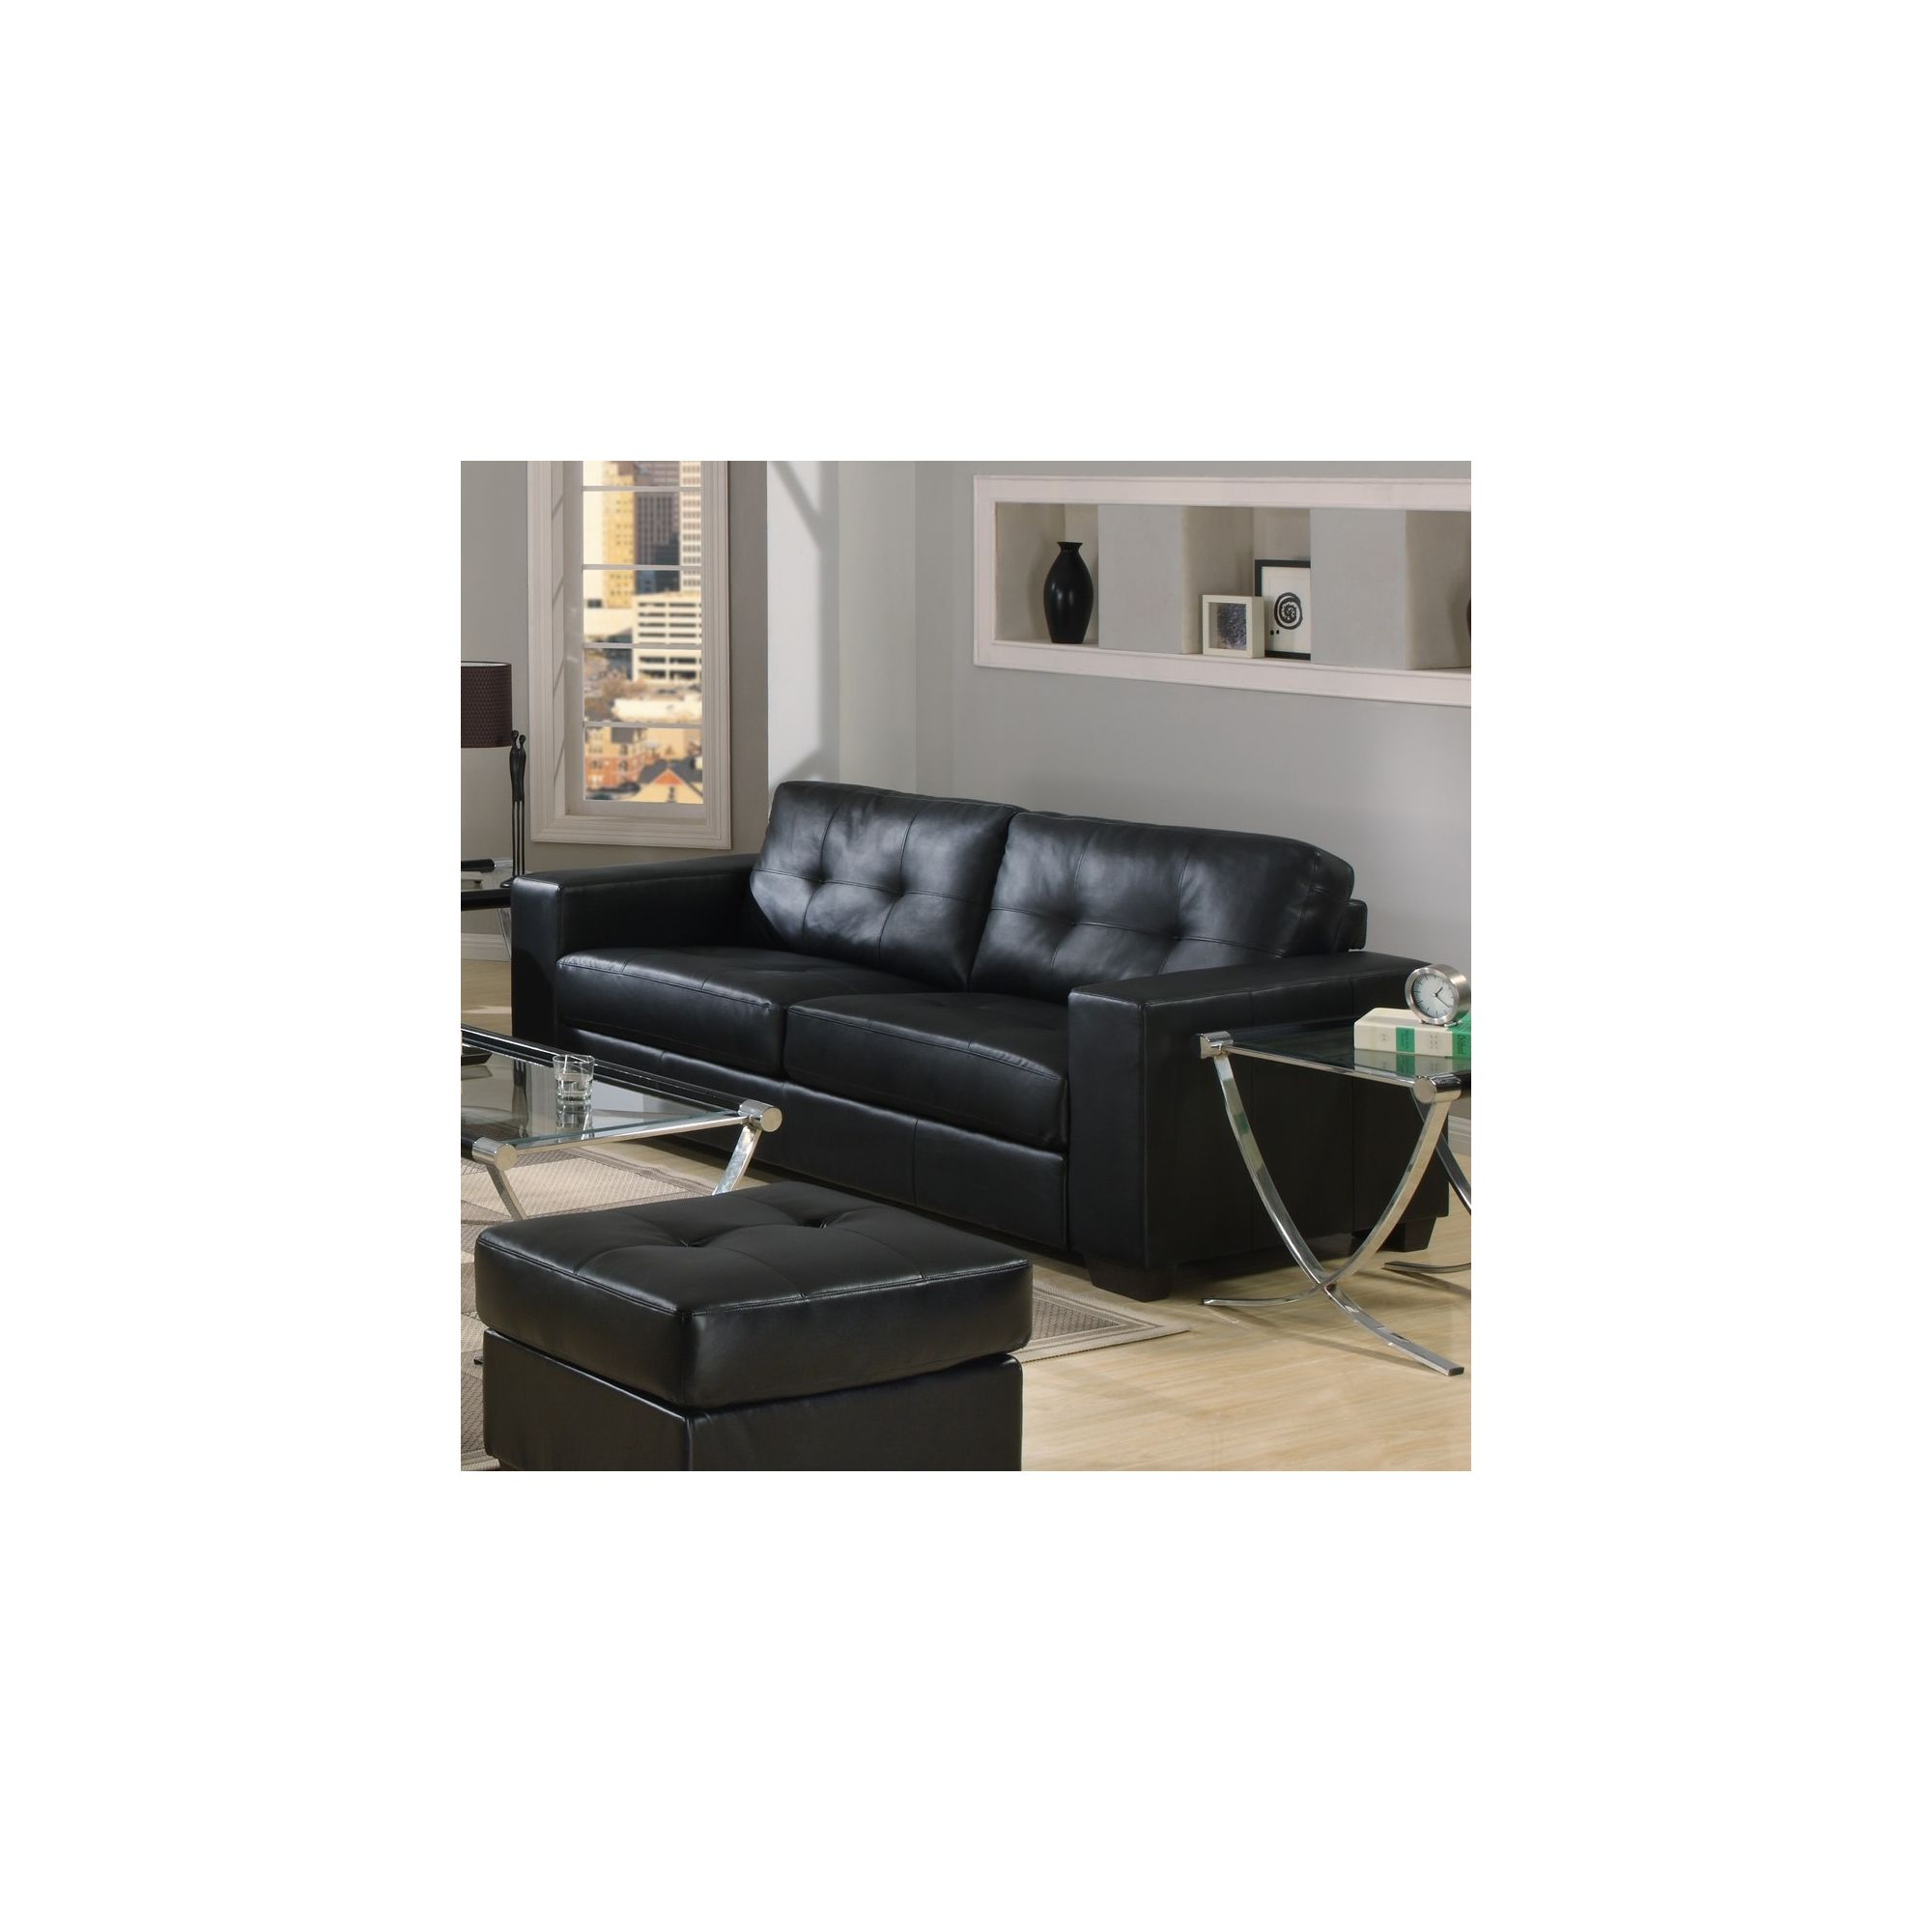 Furniture Link Gemona 3 Seater Sofa - Black at Tesco Direct